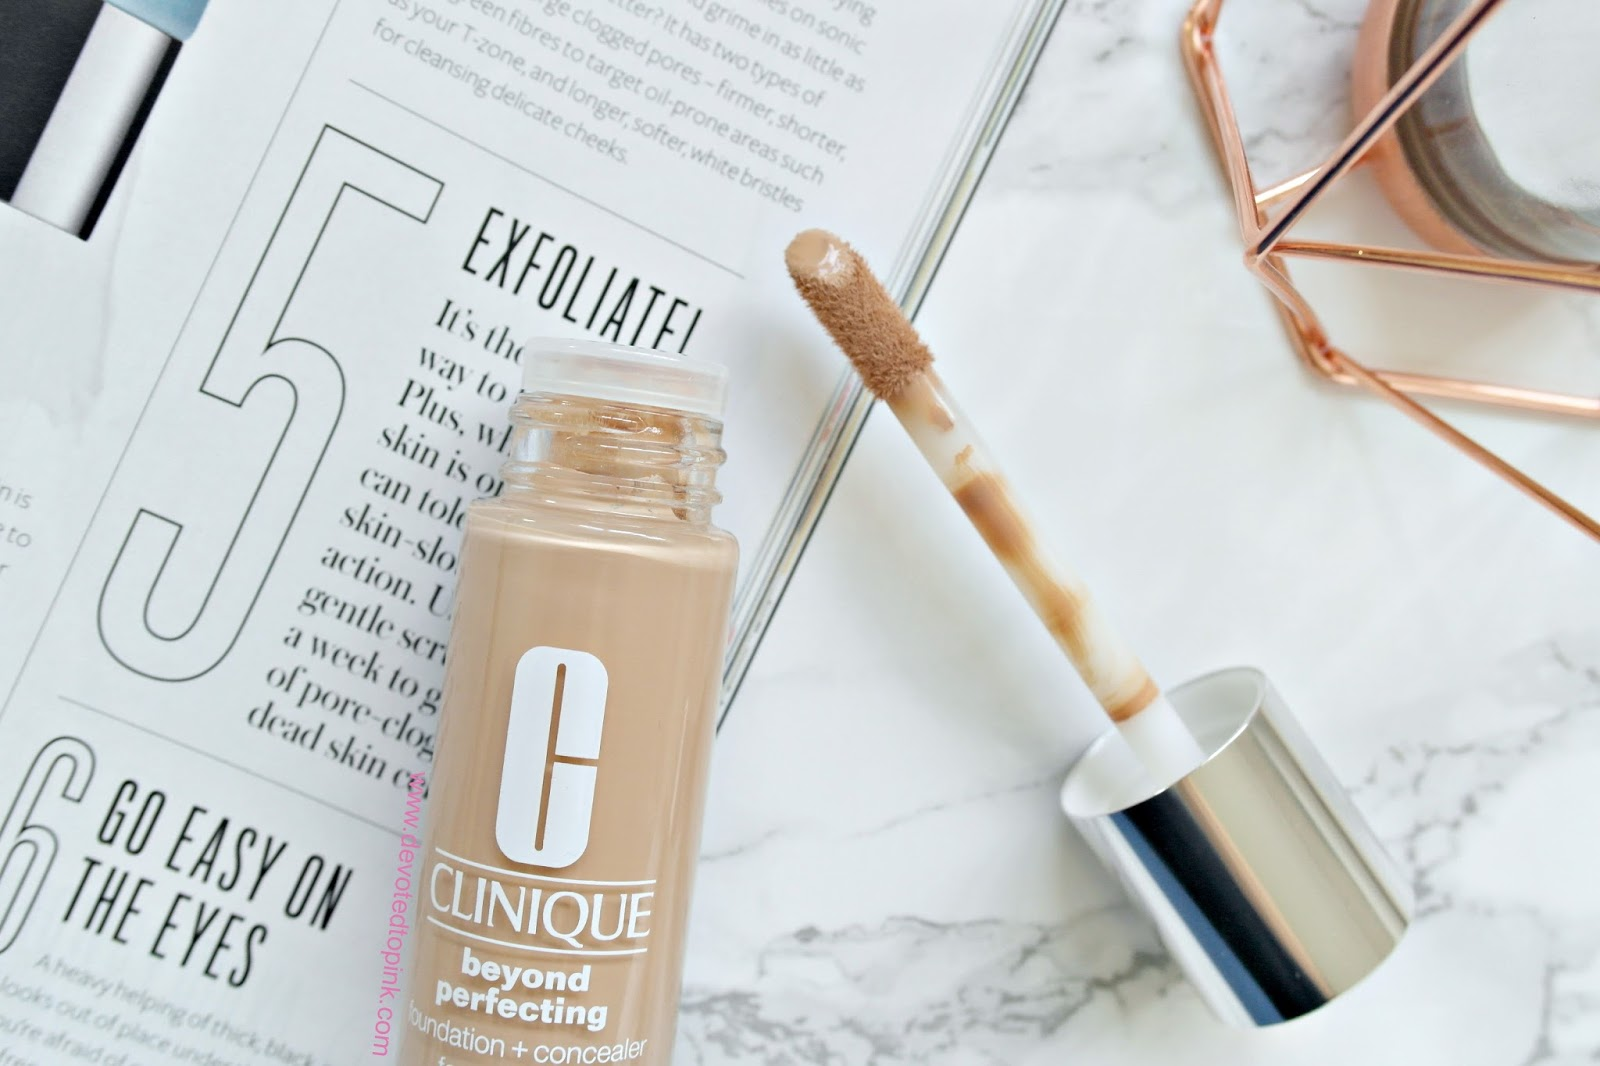 Clinique beyond perfection foundation, review